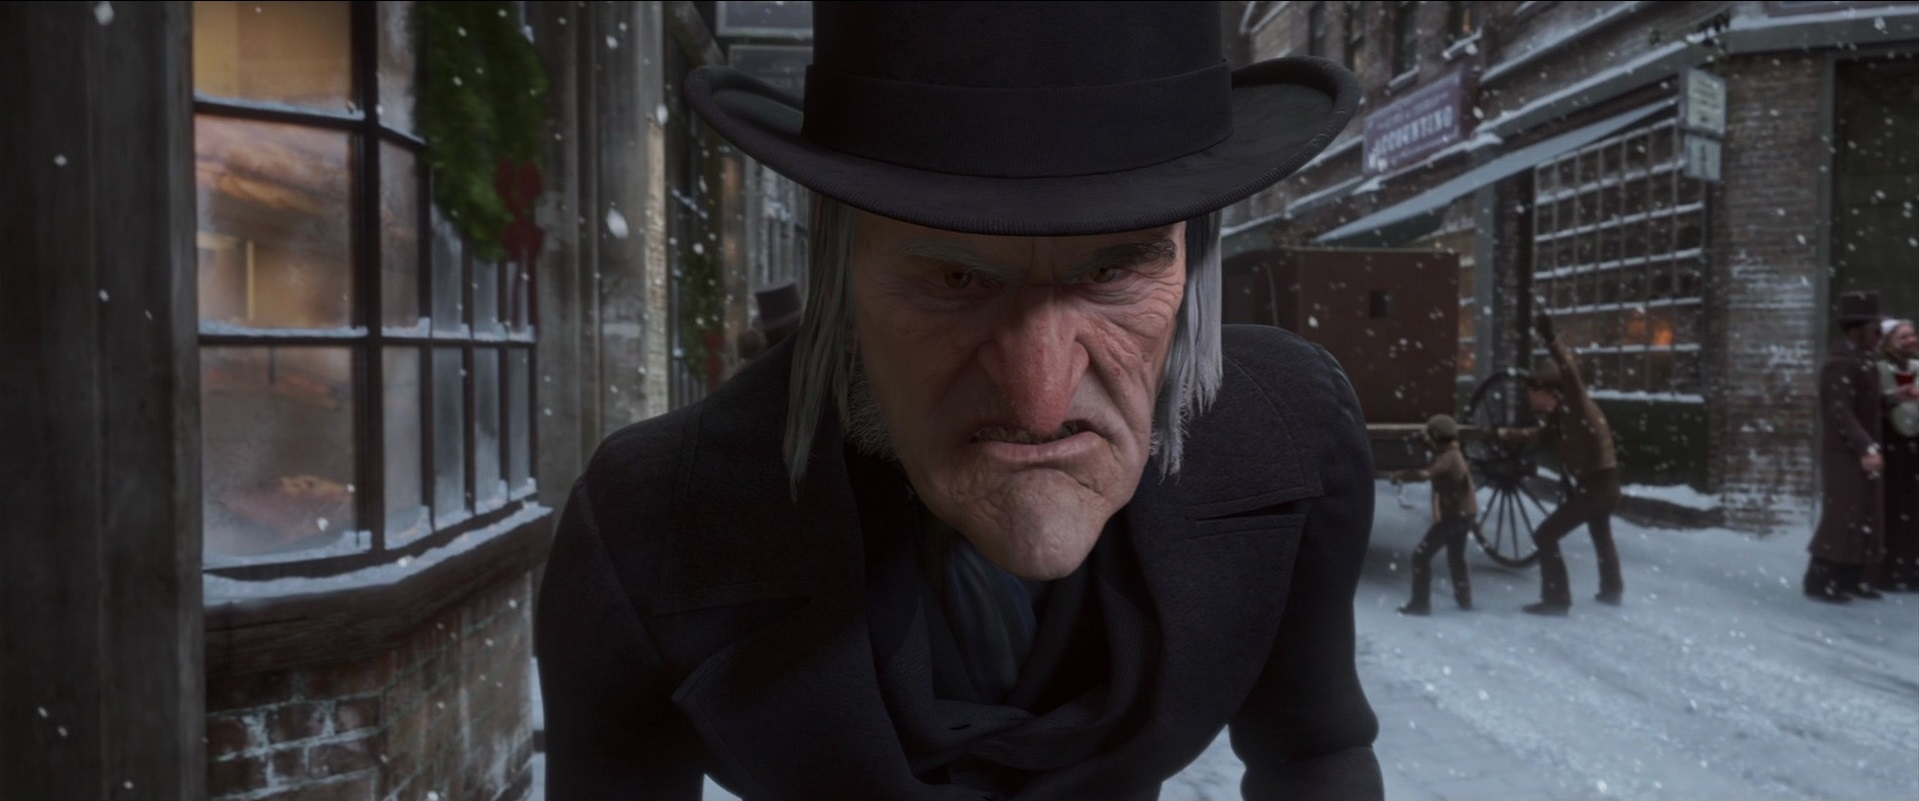 Ebenezer Scrooge | Disney Wiki | FANDOM powered by Wikia